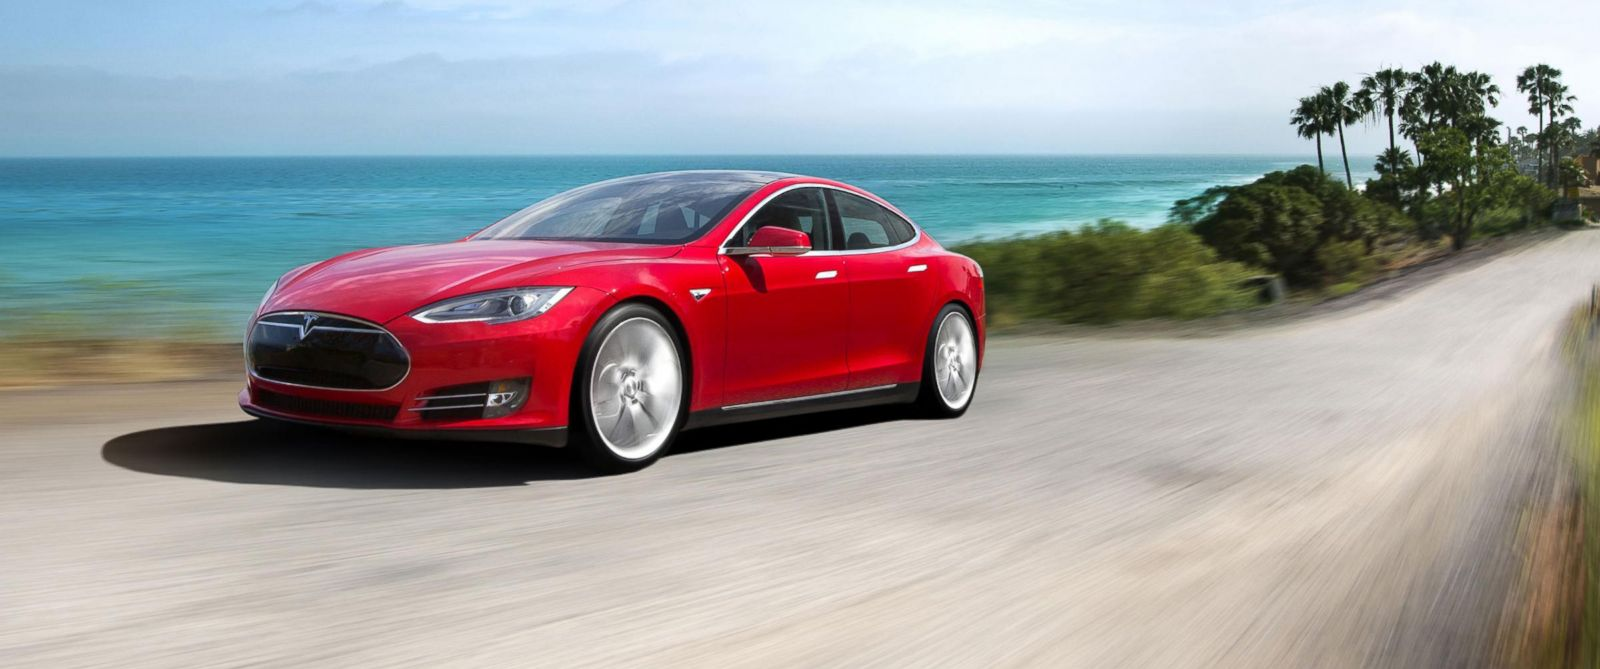 PHOTO: Pictured is a Tesla Model S.